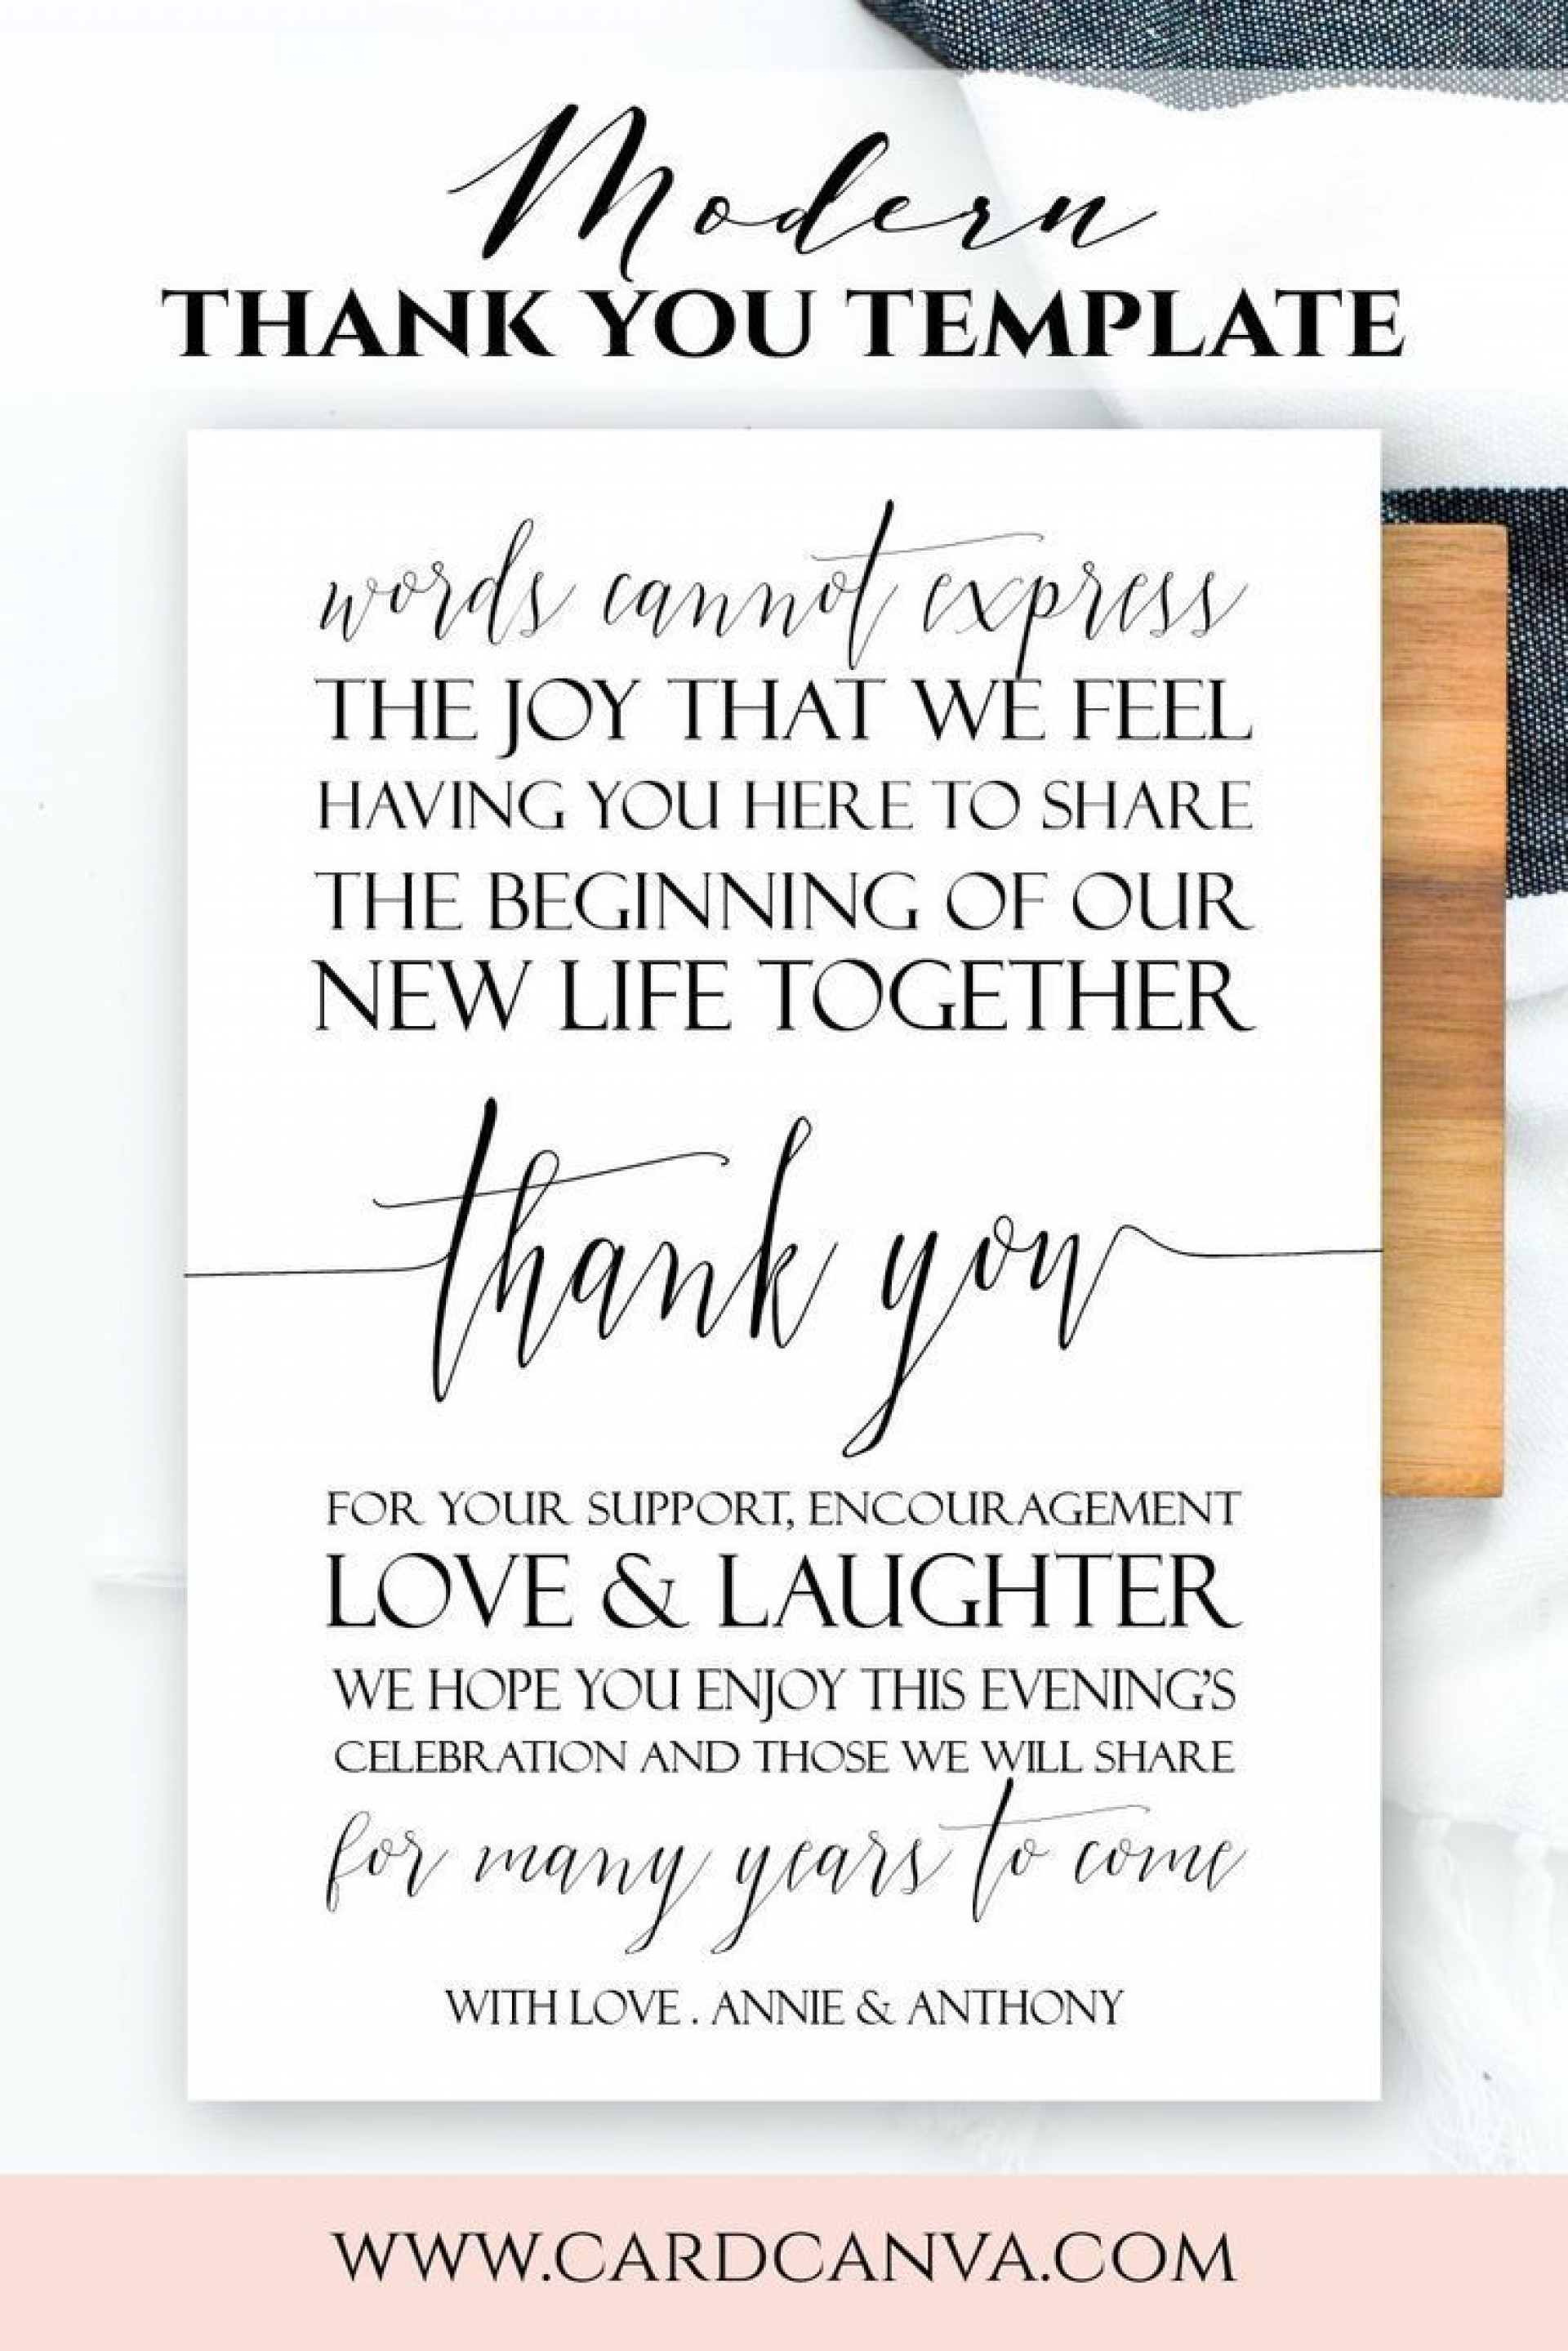 006 Sensational Thank You Note For Wedding Guest Template Inspiration  Card1920